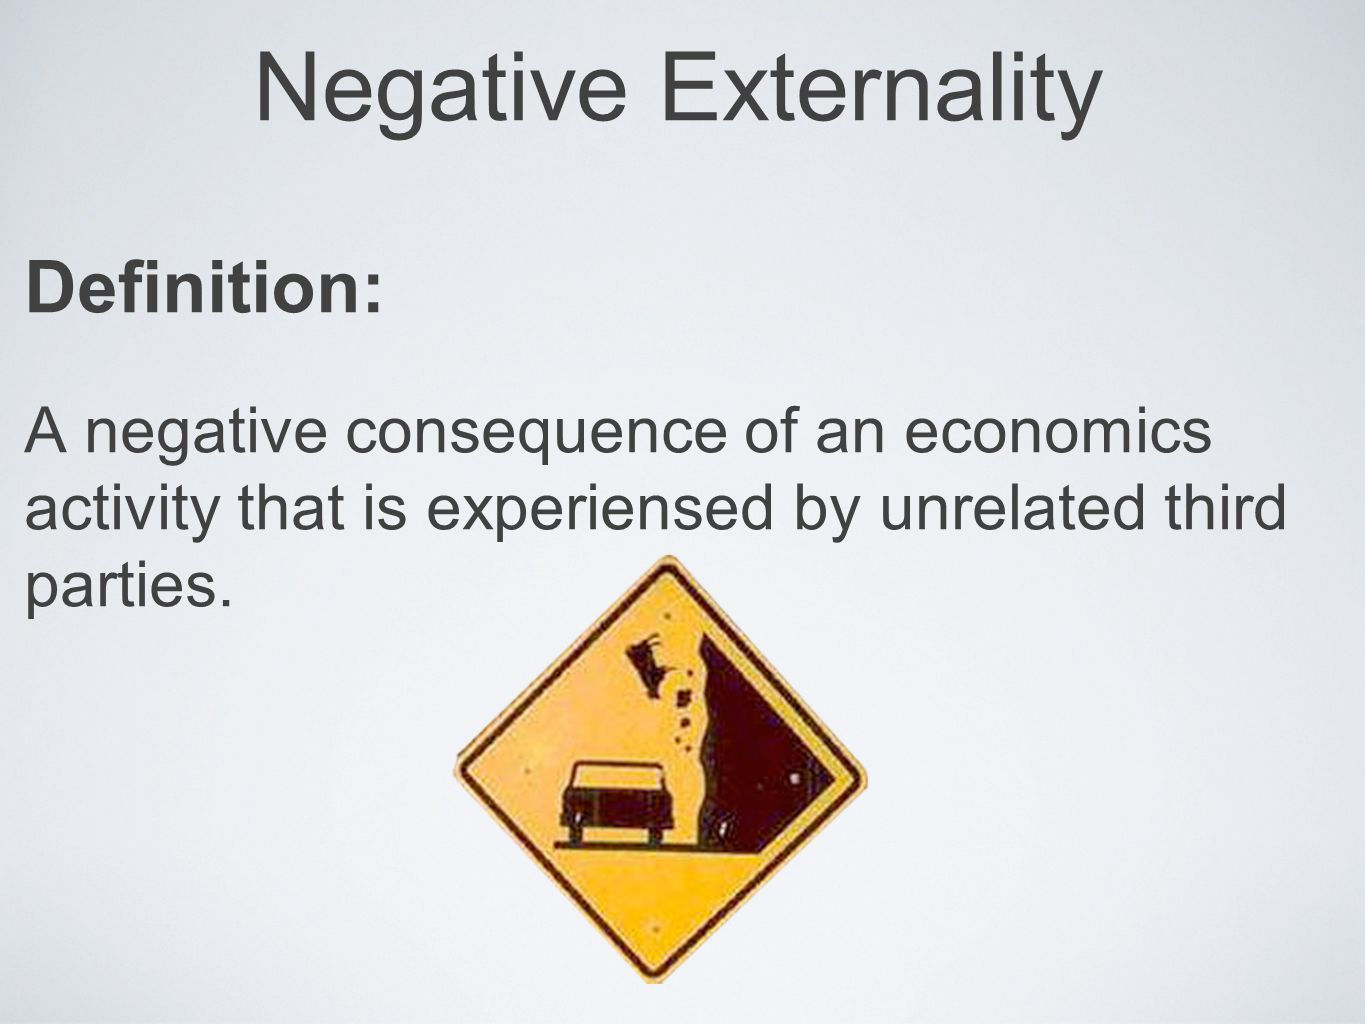 Negative Externality Definition: A negative consequence of an economics activity that is experiensed by unrelated third parties.